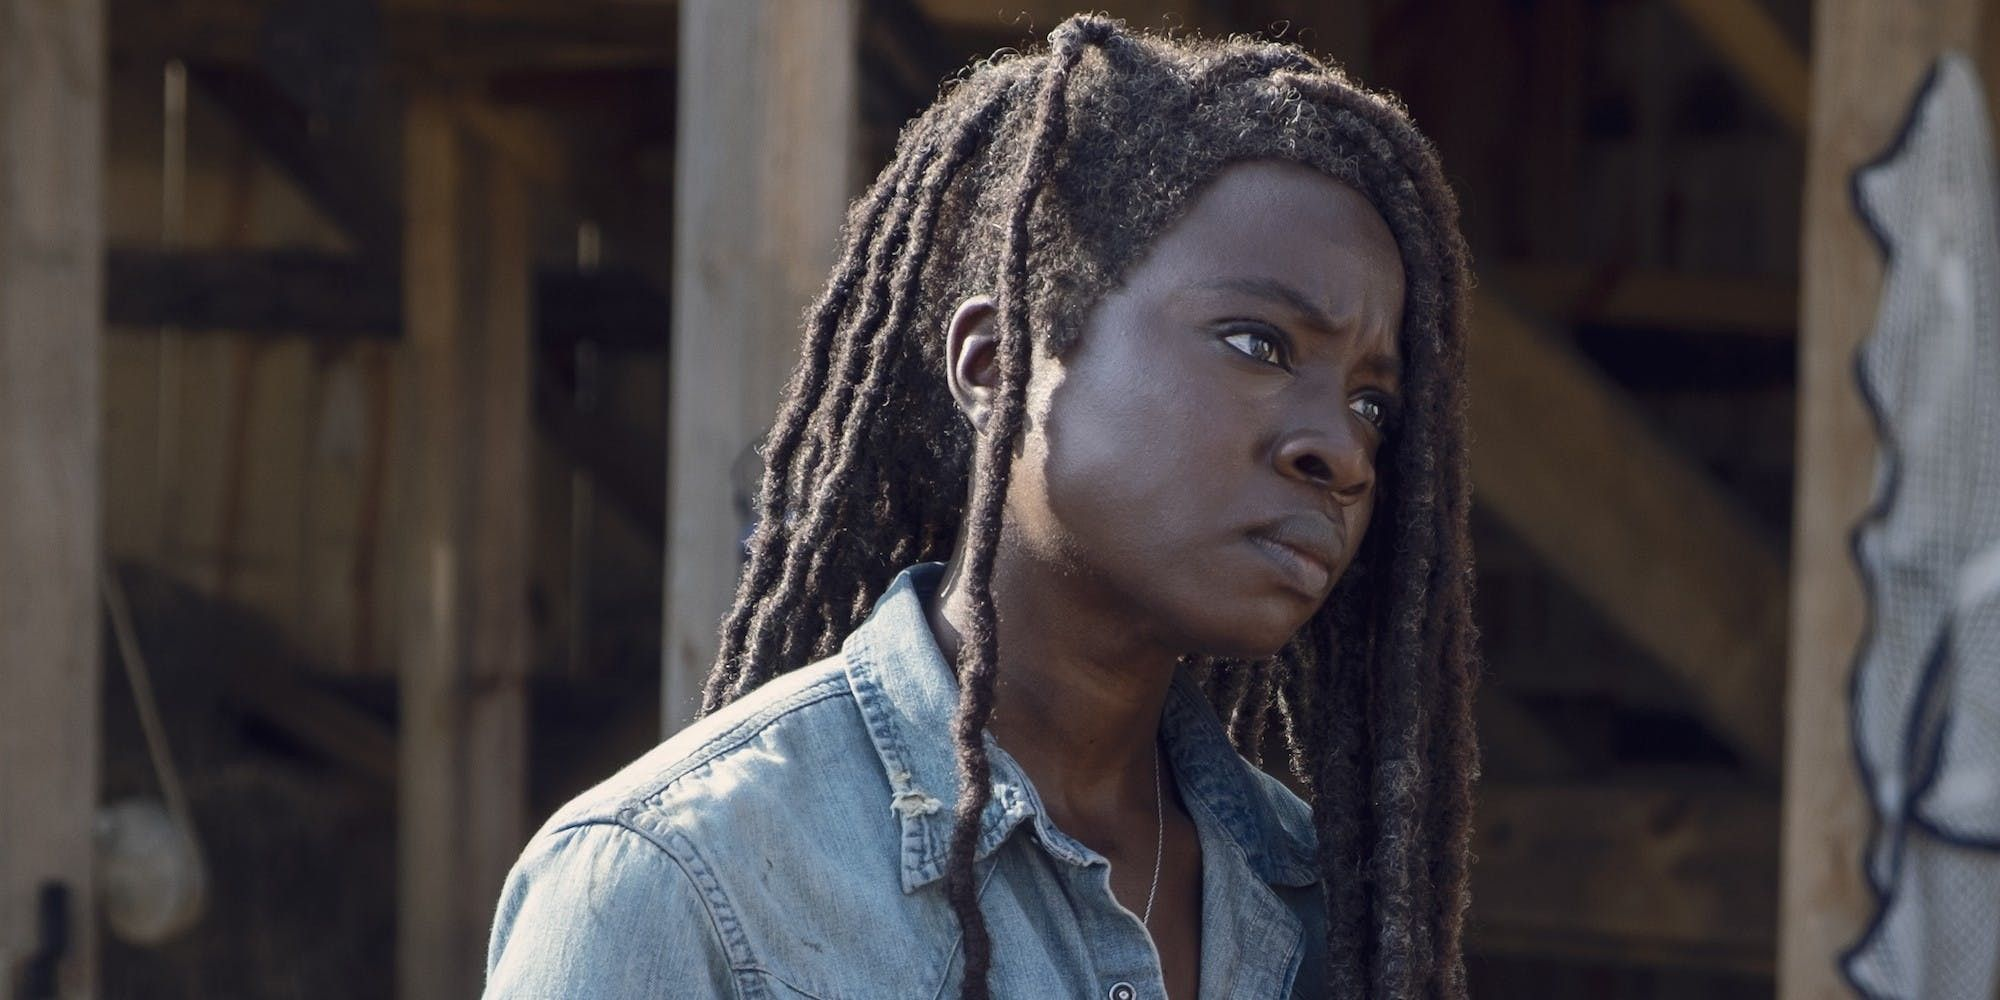 Walking Dead Season 10: Michonne Battles Zombies In Fiery First Image